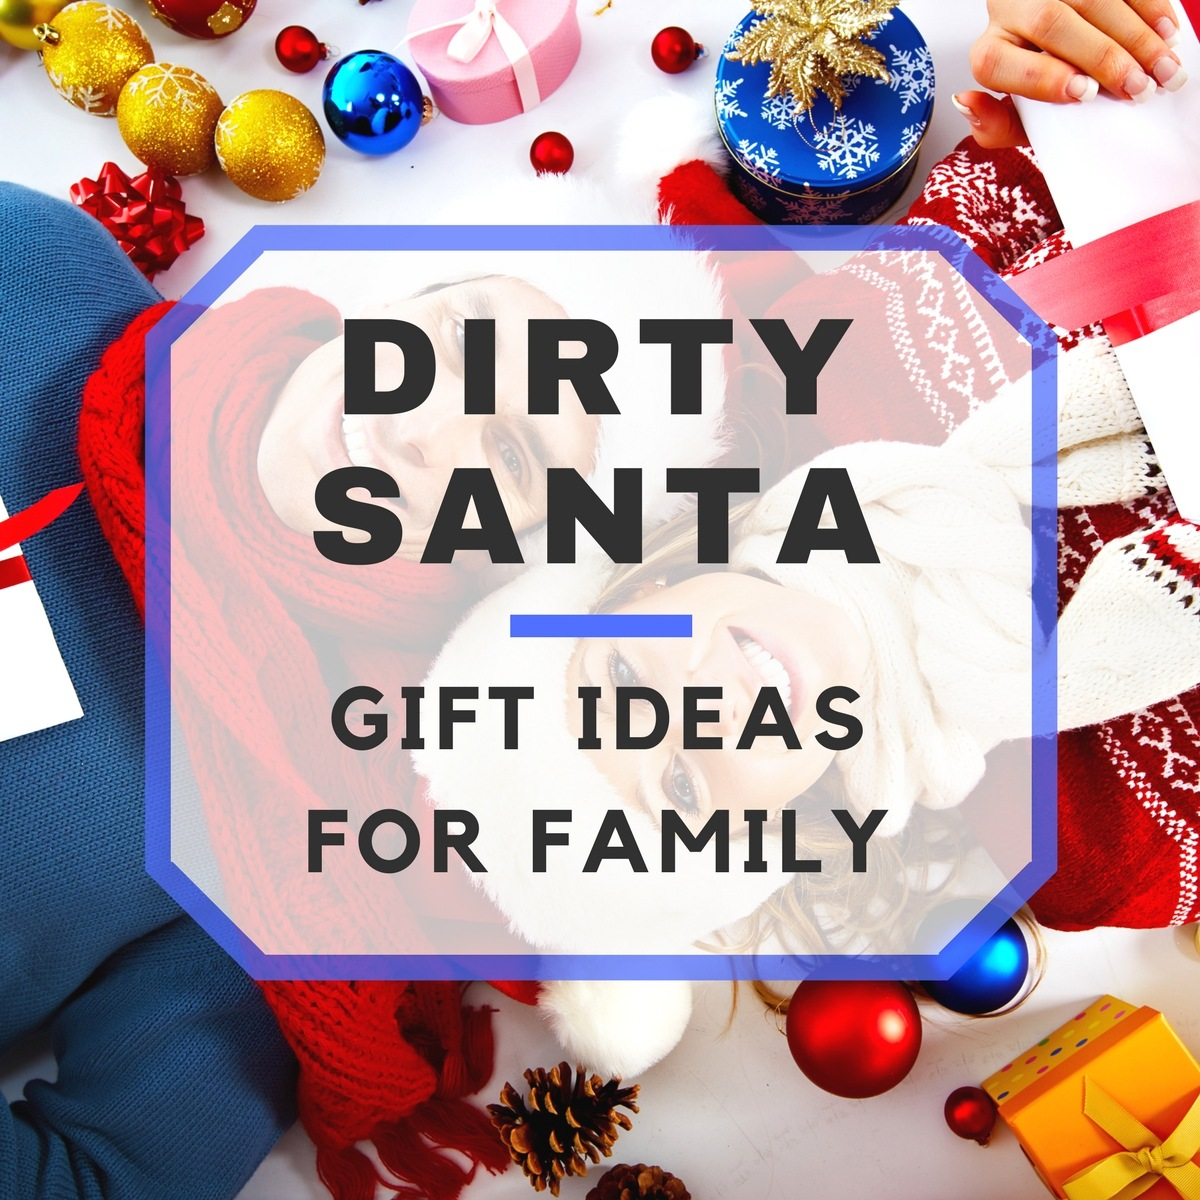 15 dirty santa gift ideas for family negle Image collections